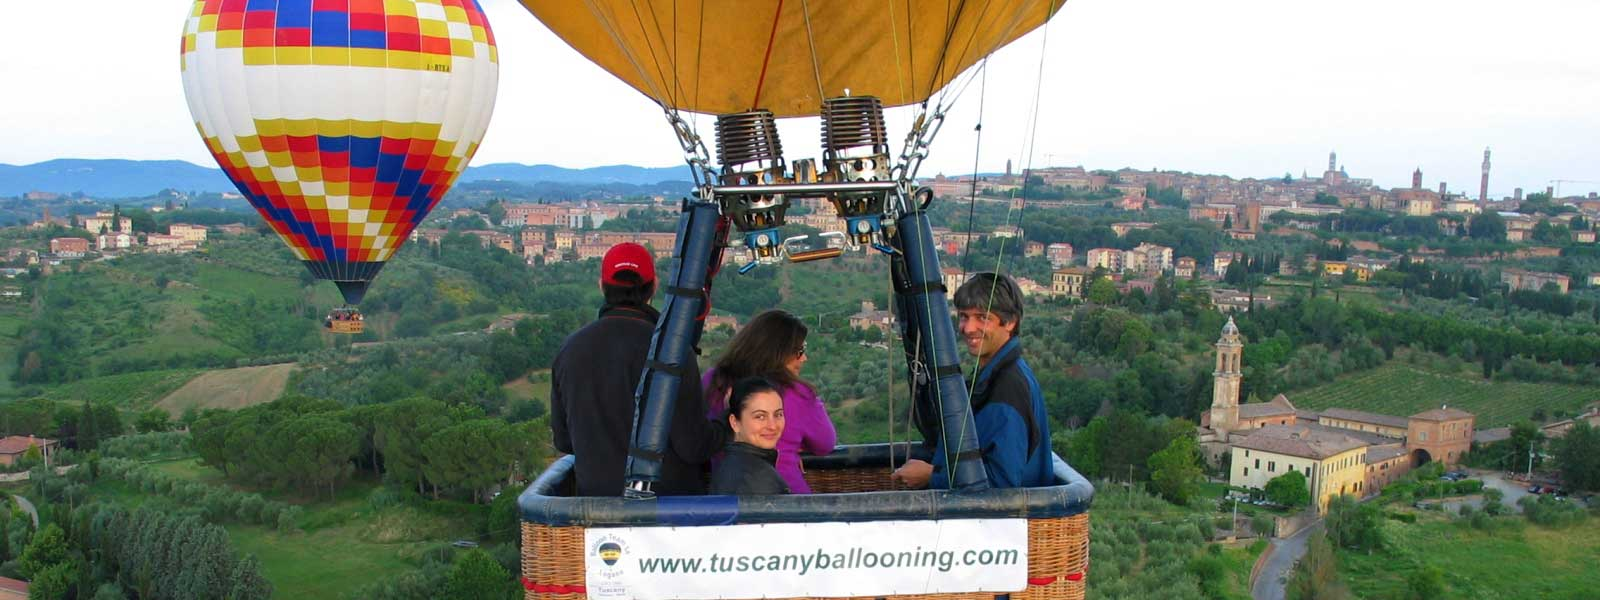 selfy-in-balloon-over-siena